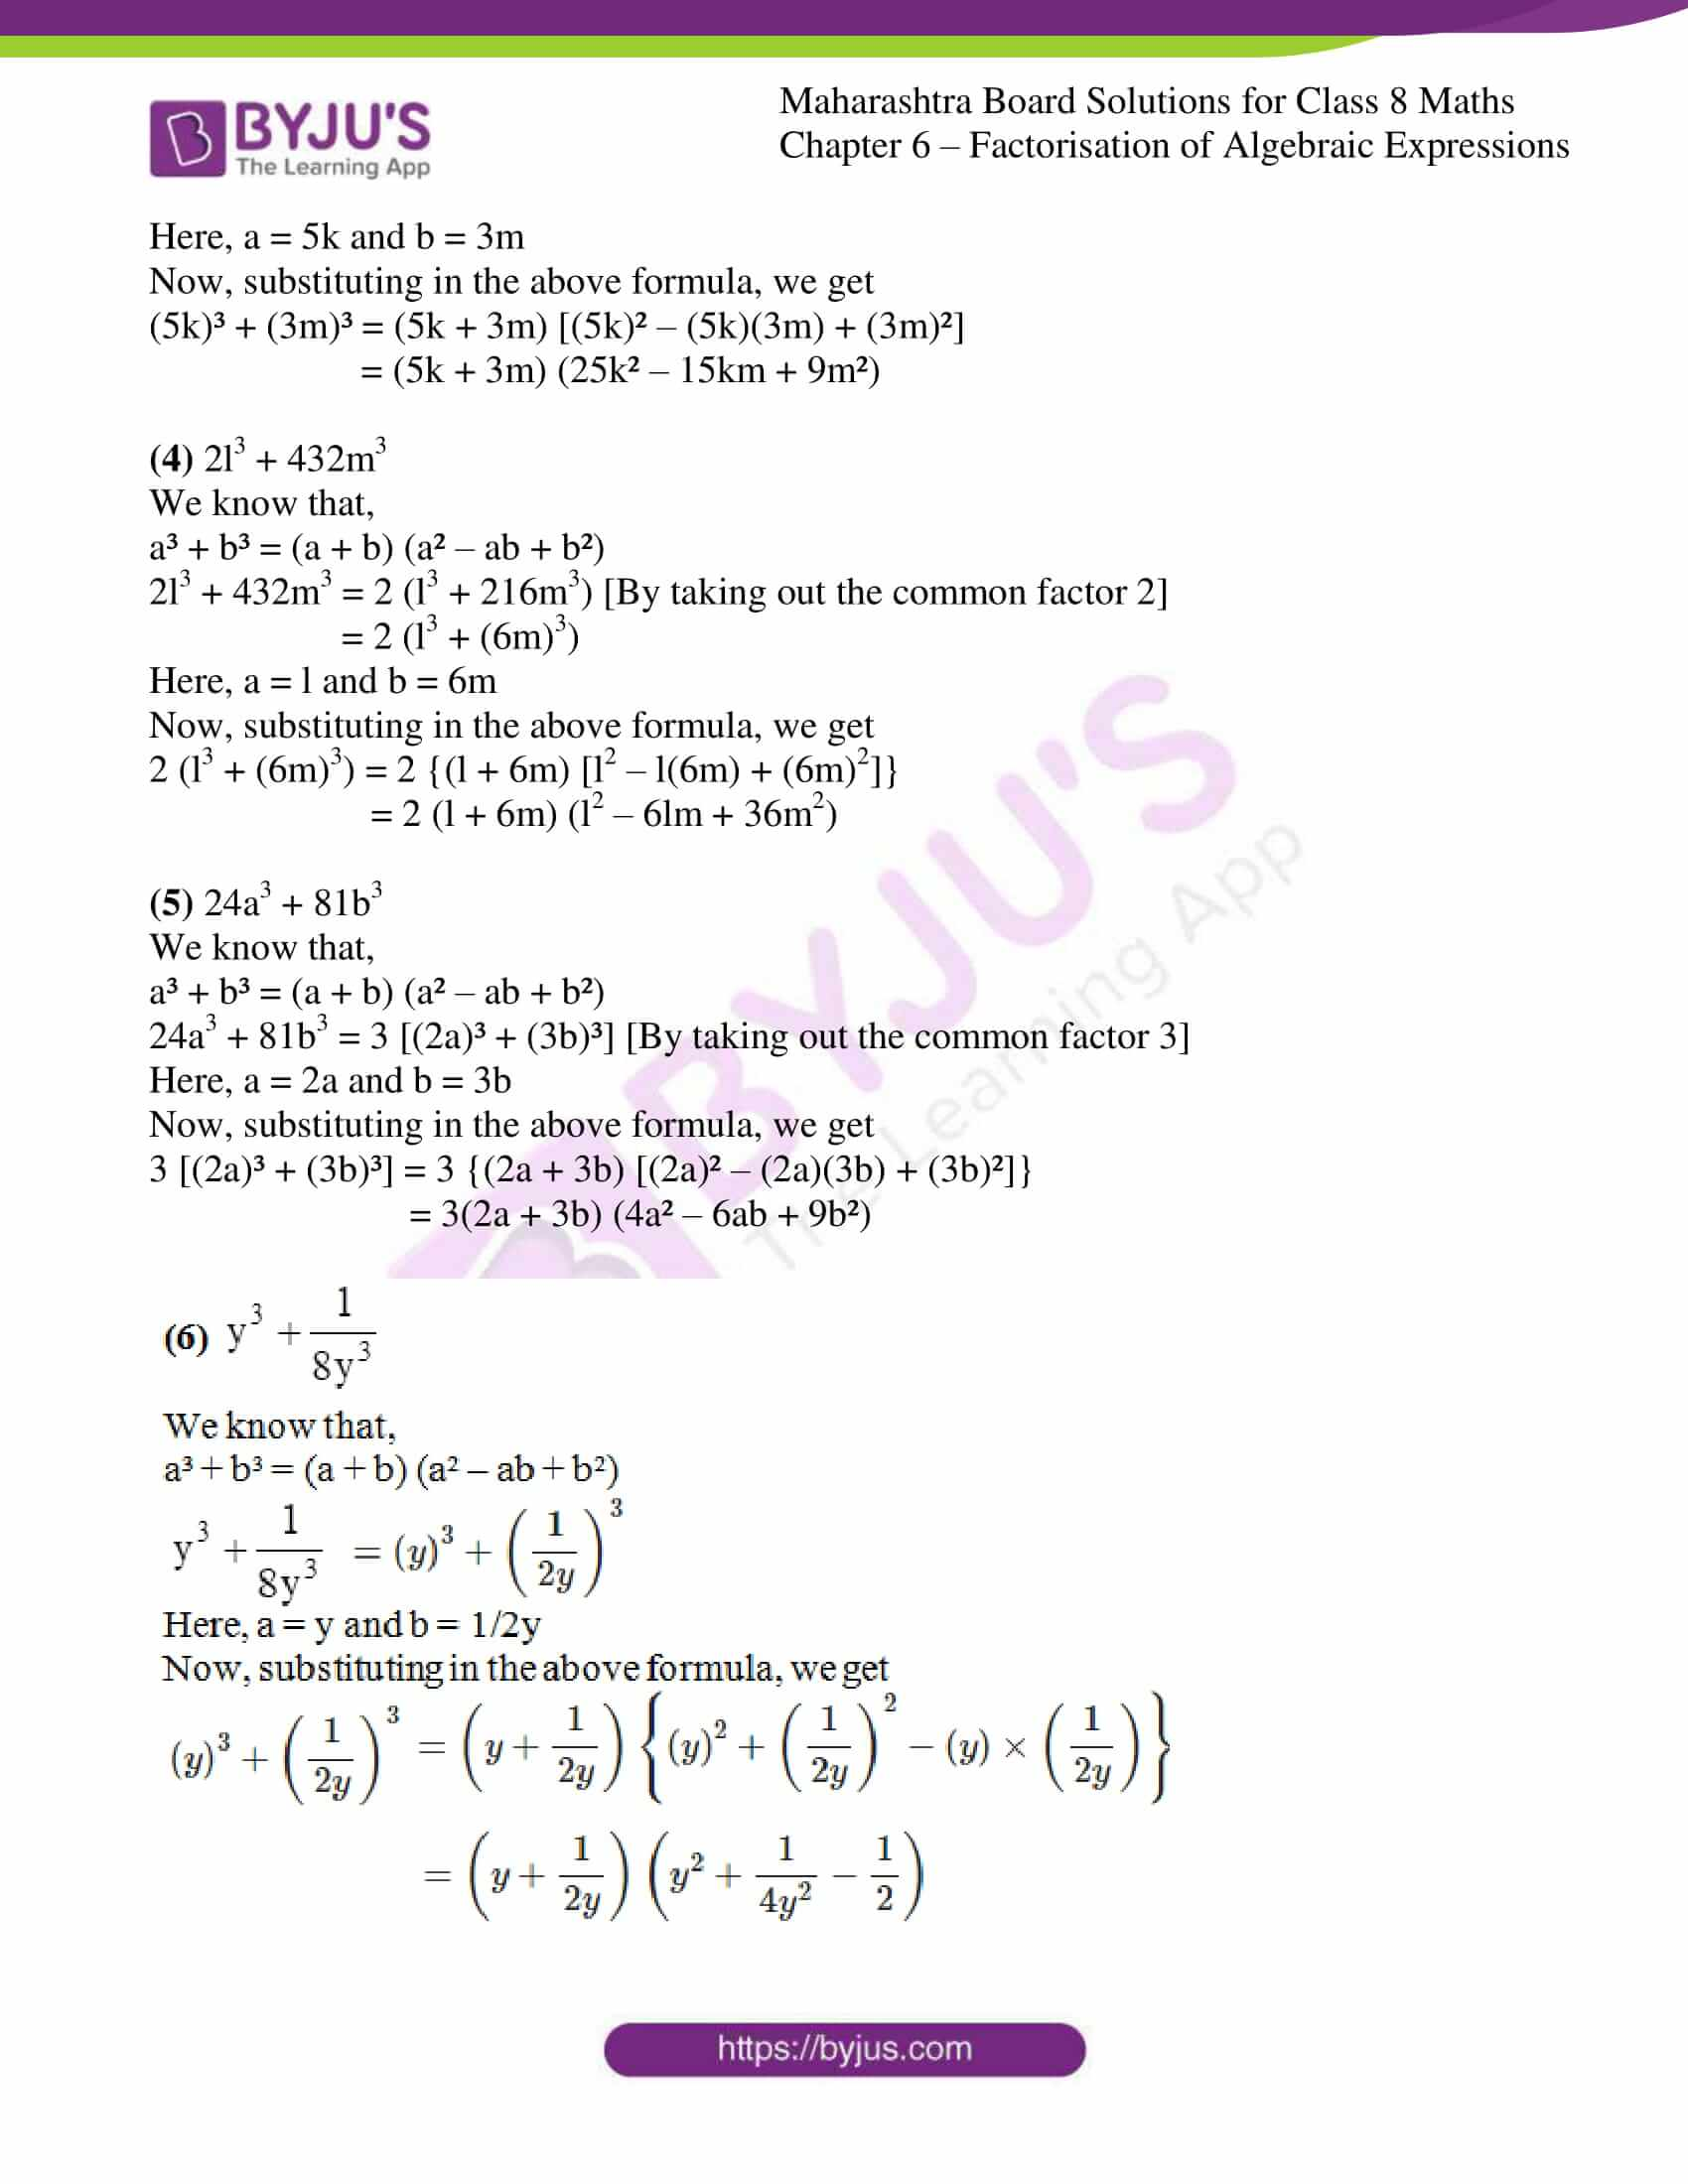 msbshse sol for class 8 maths chapter 6 05